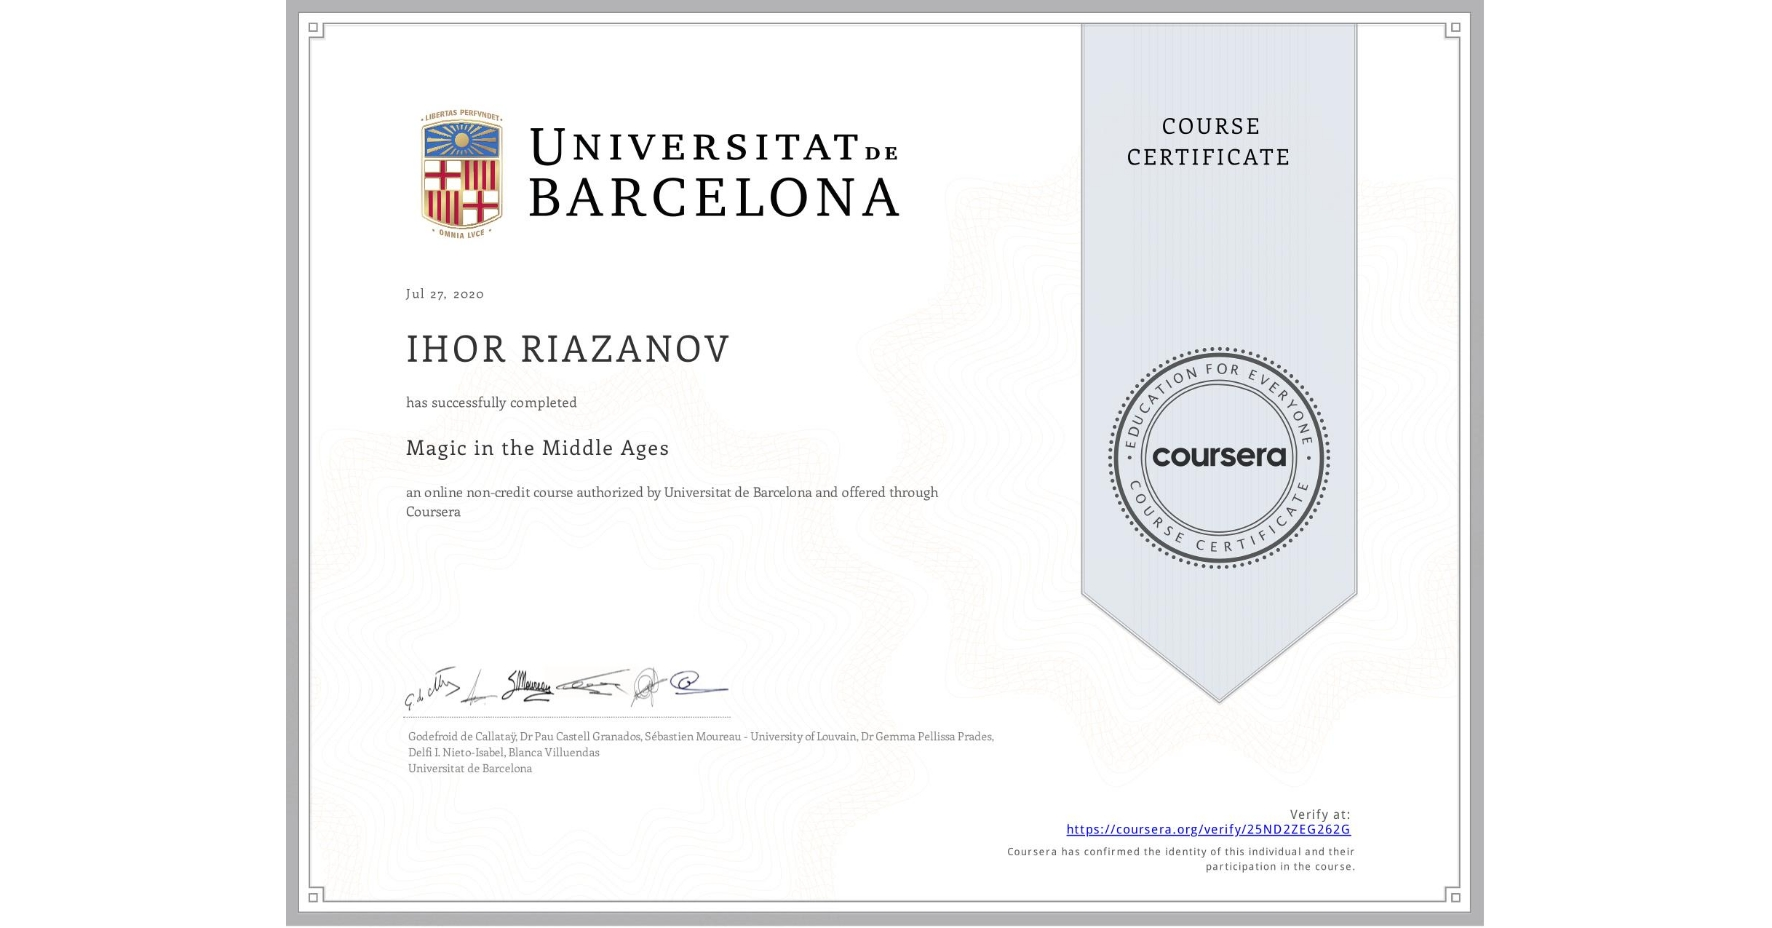 View certificate for IHOR RIAZANOV, Magic in the Middle Ages, an online non-credit course authorized by Universitat de Barcelona and offered through Coursera